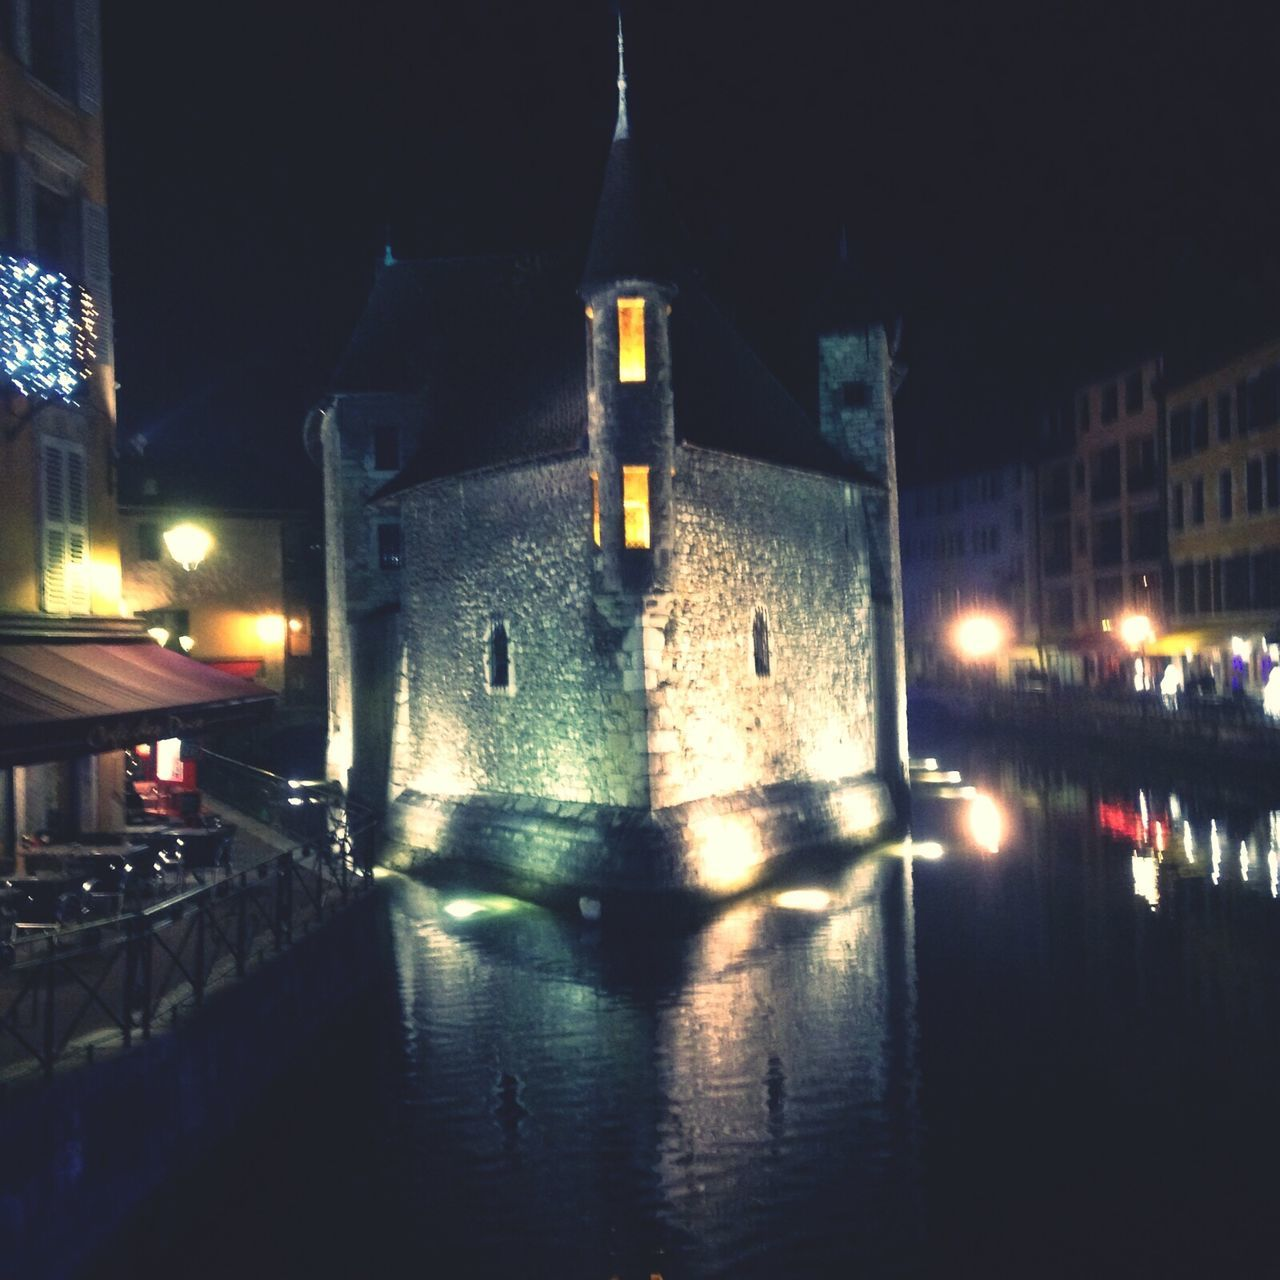 illuminated, night, architecture, transportation, built structure, building exterior, mode of transport, no people, water, outdoors, city, sky